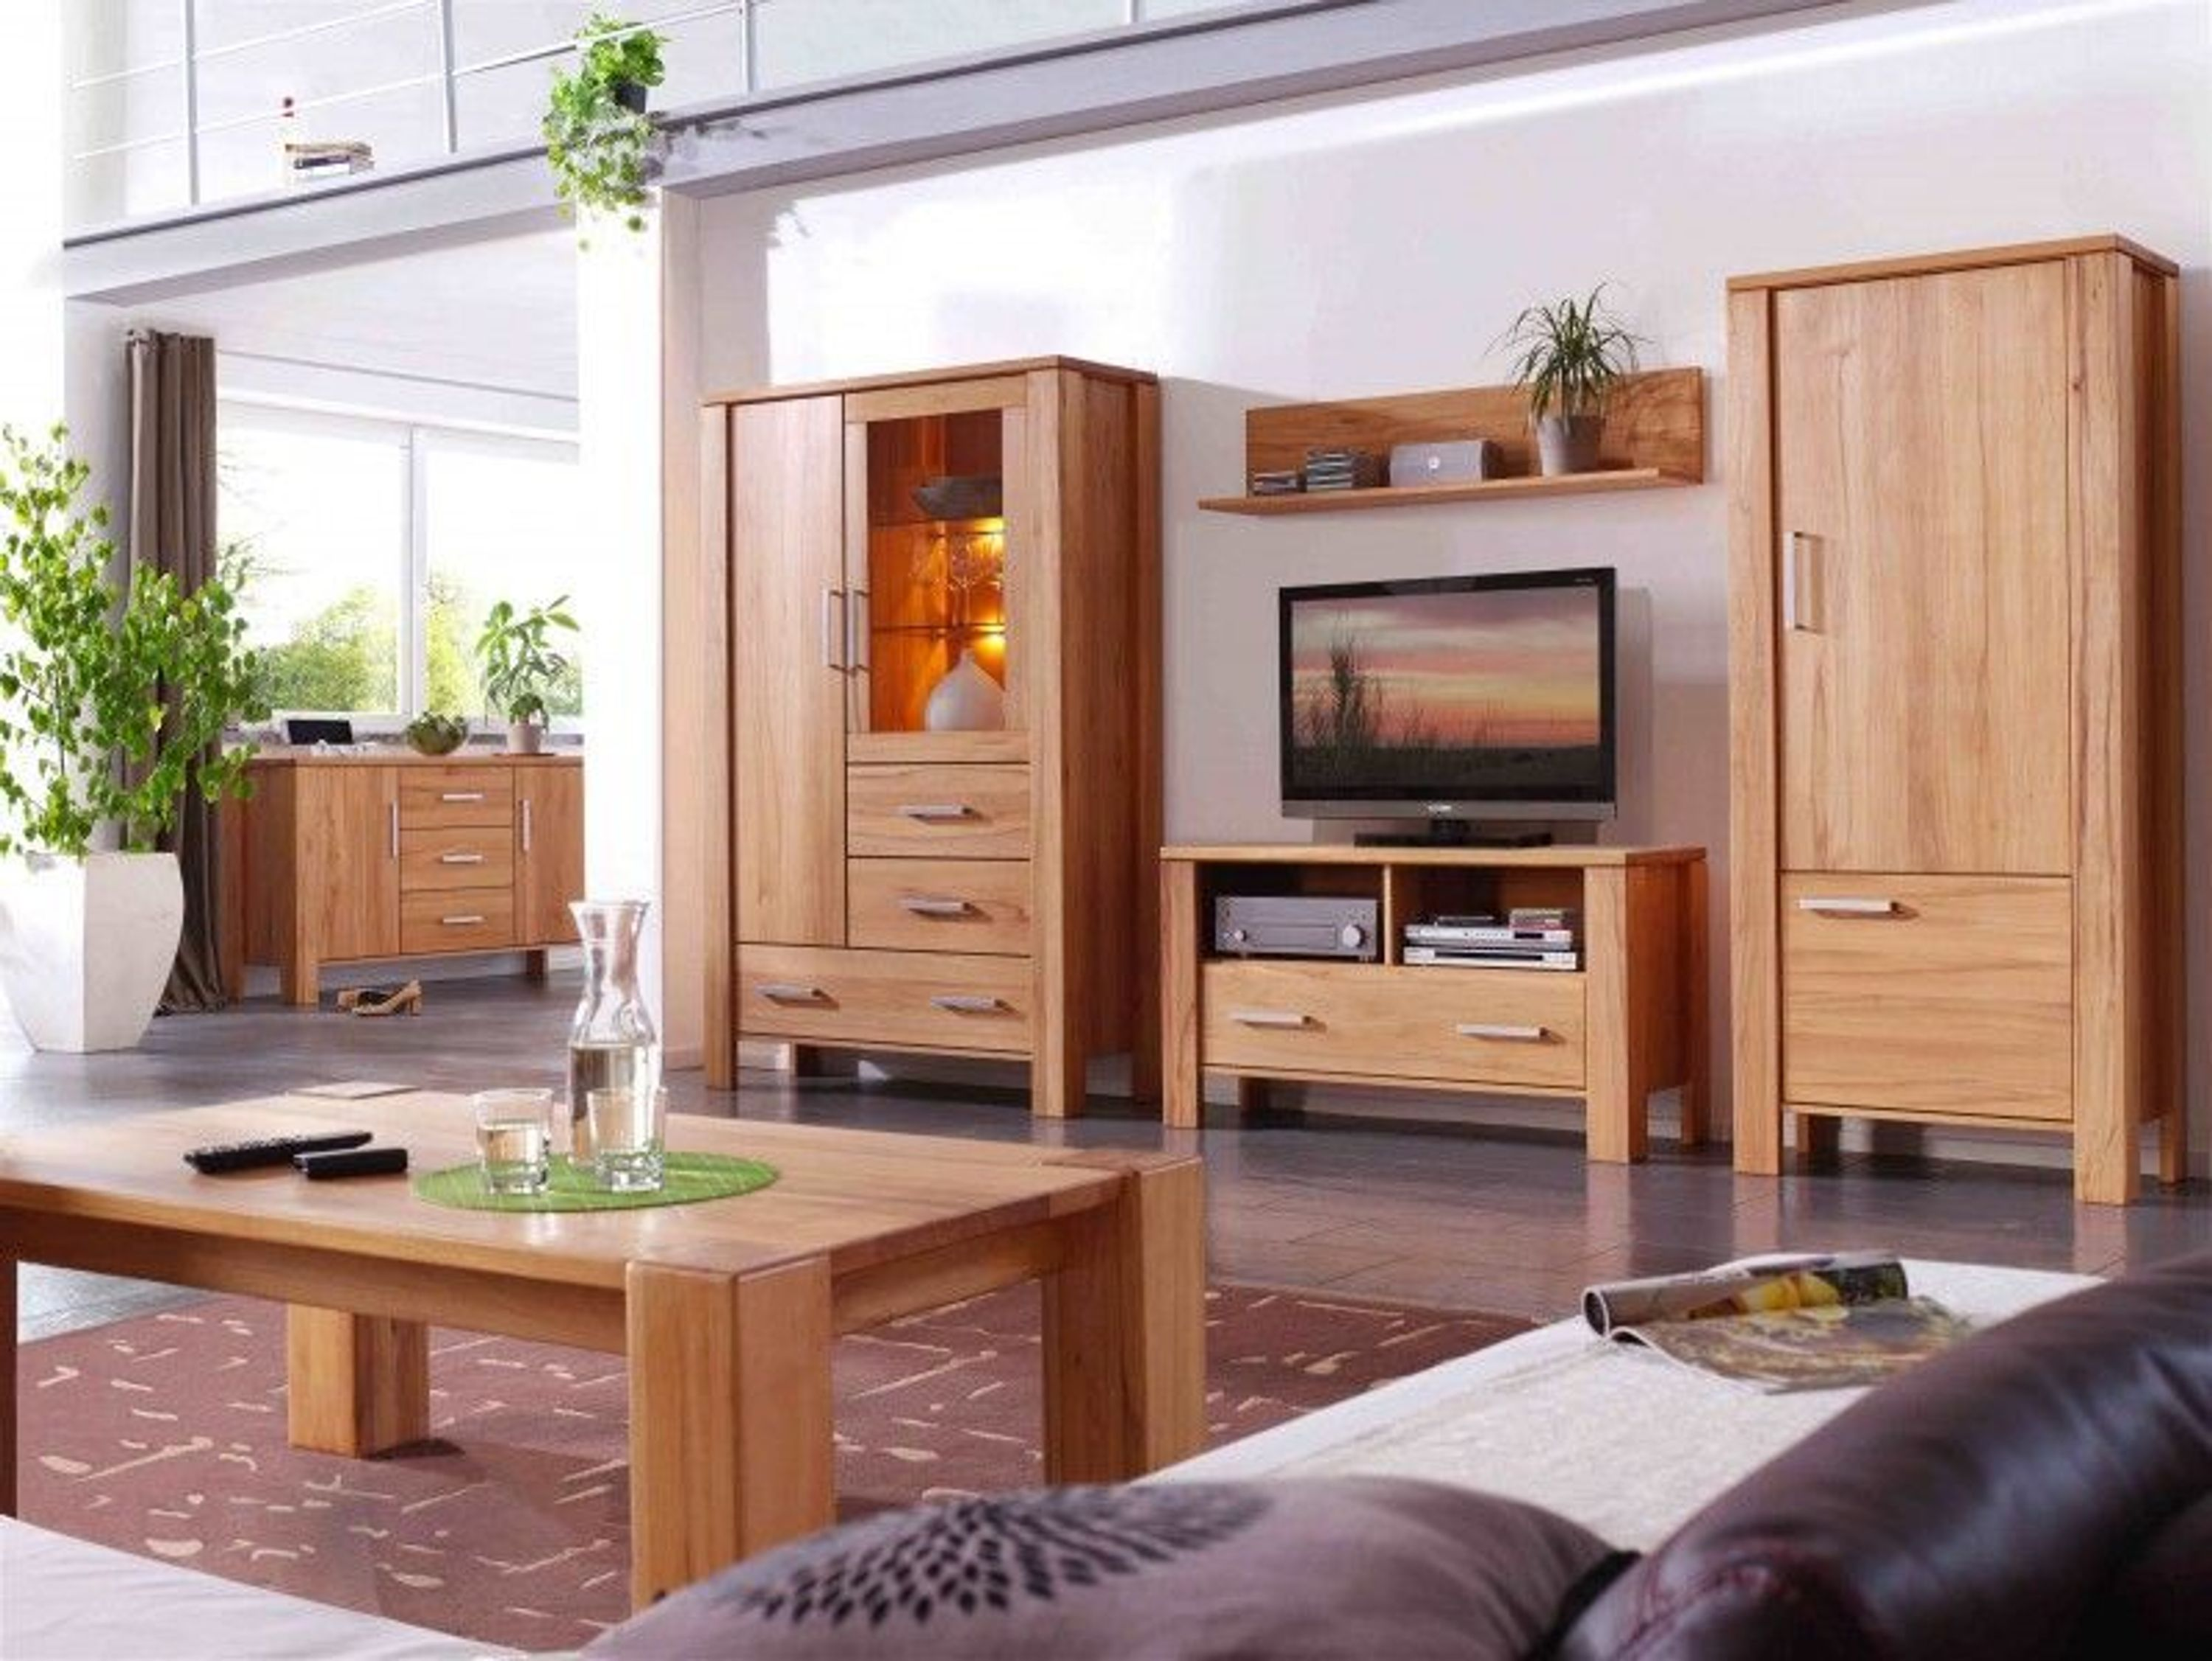 wohnzimmer schrank sideboard wandboard tv kernbuche massiv. Black Bedroom Furniture Sets. Home Design Ideas